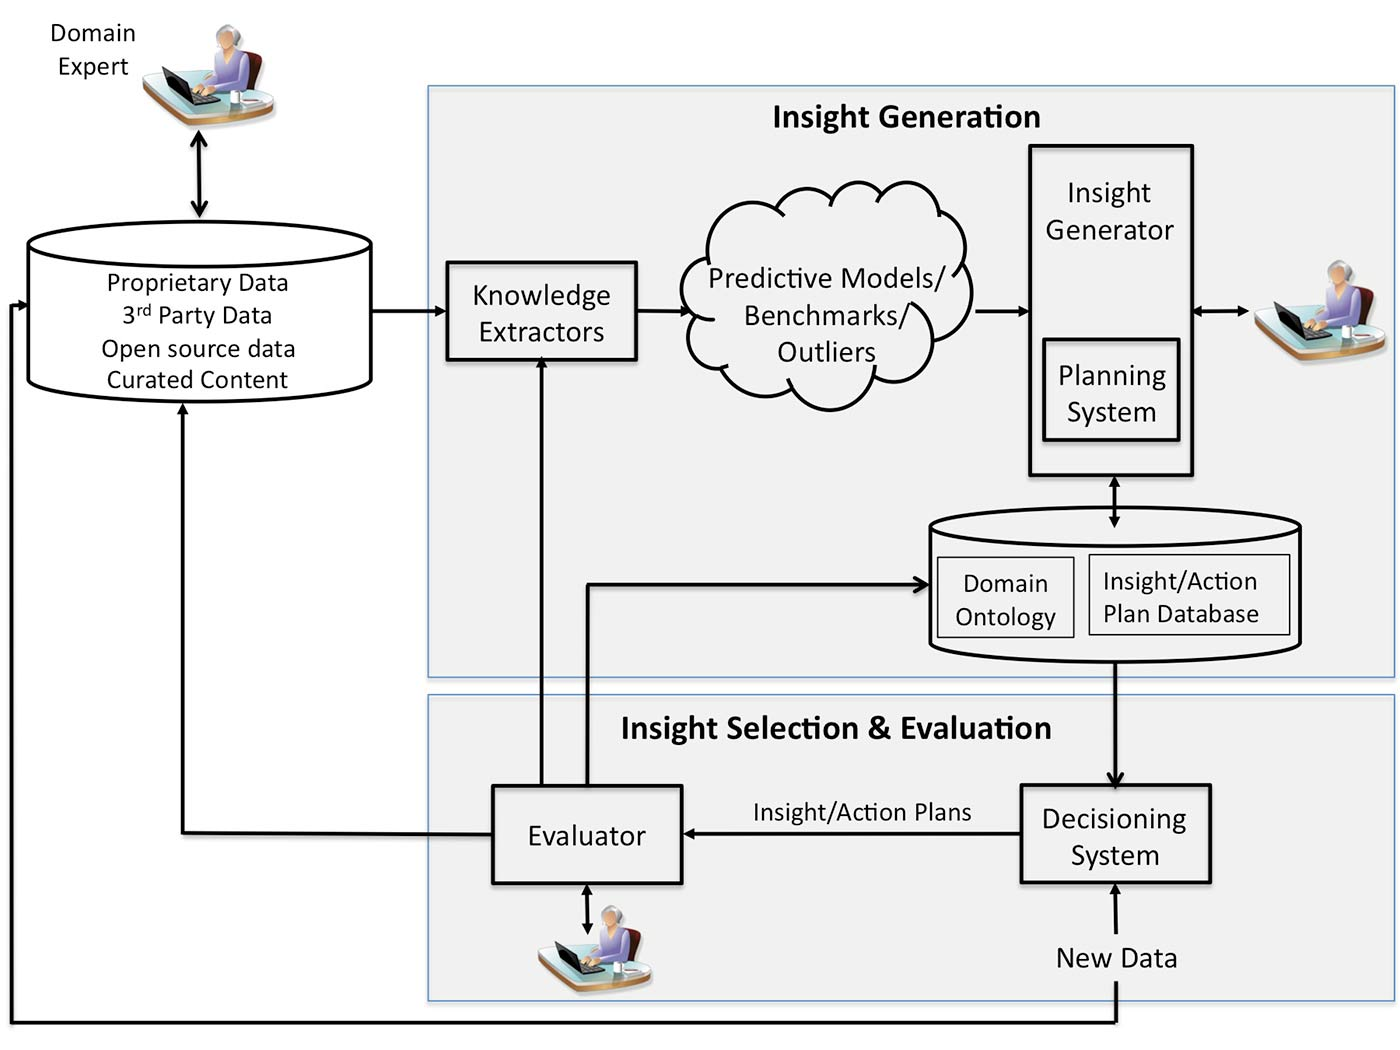 Insight generation process